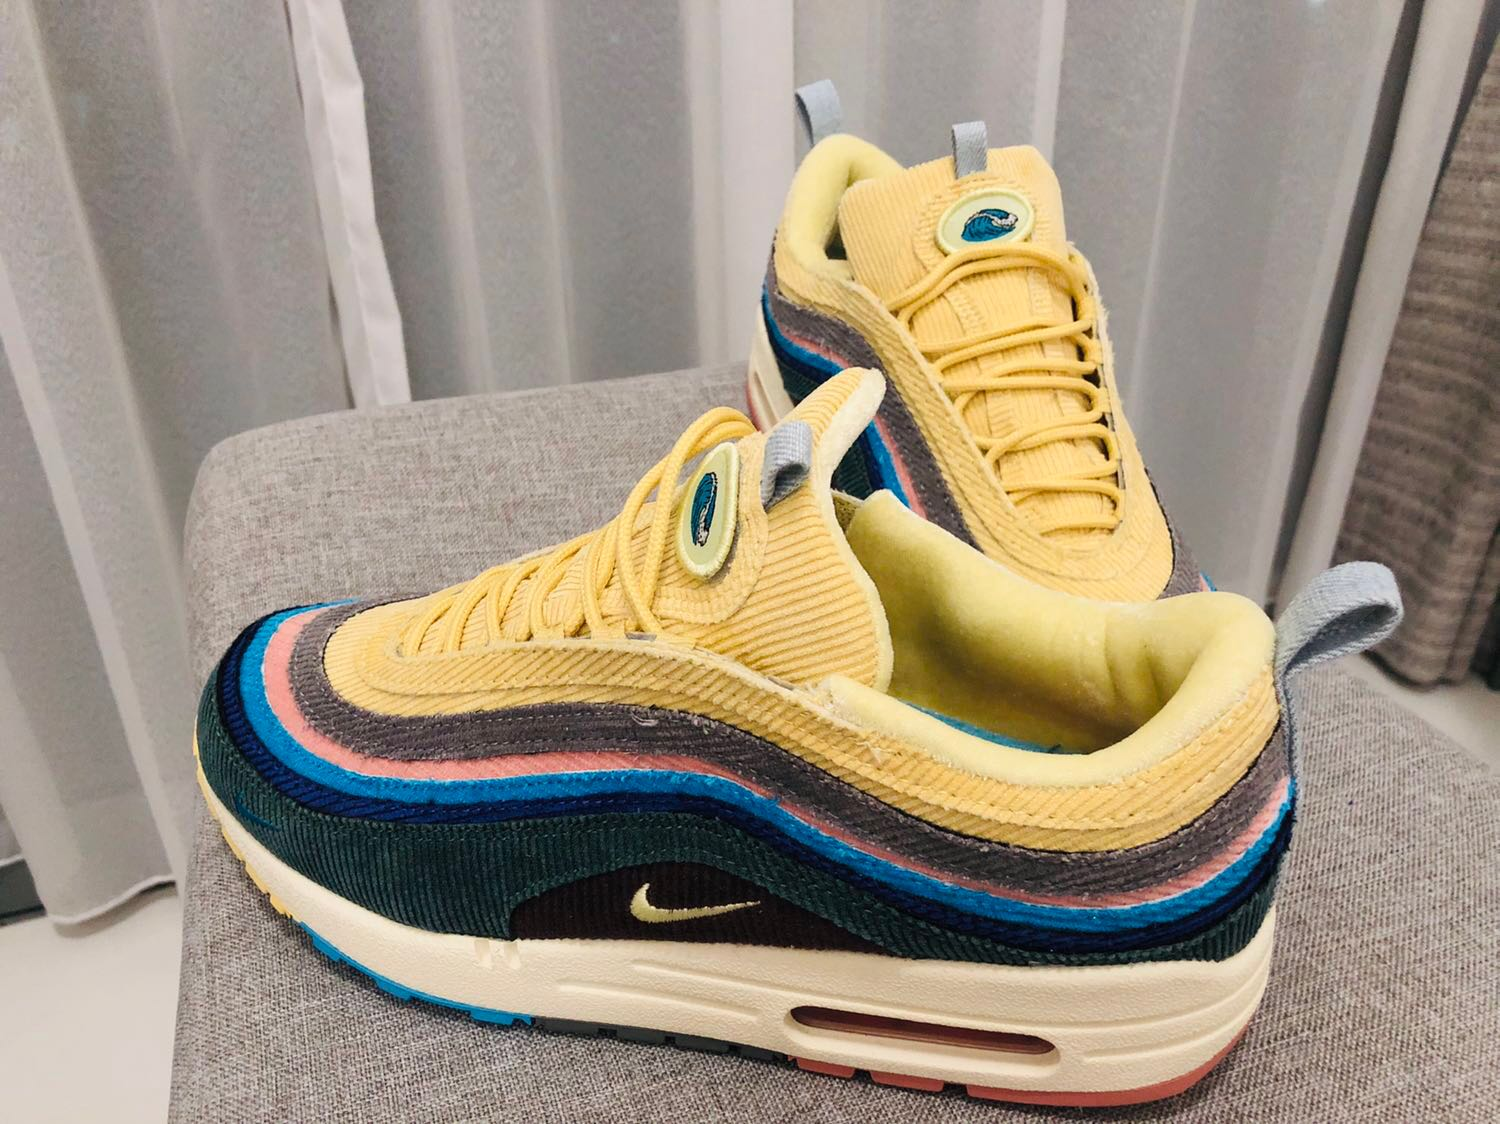 meet bda81 d5584 Sean Witherspoon Air Max 97, Men s Fashion, Footwear, Sneakers on Carousell